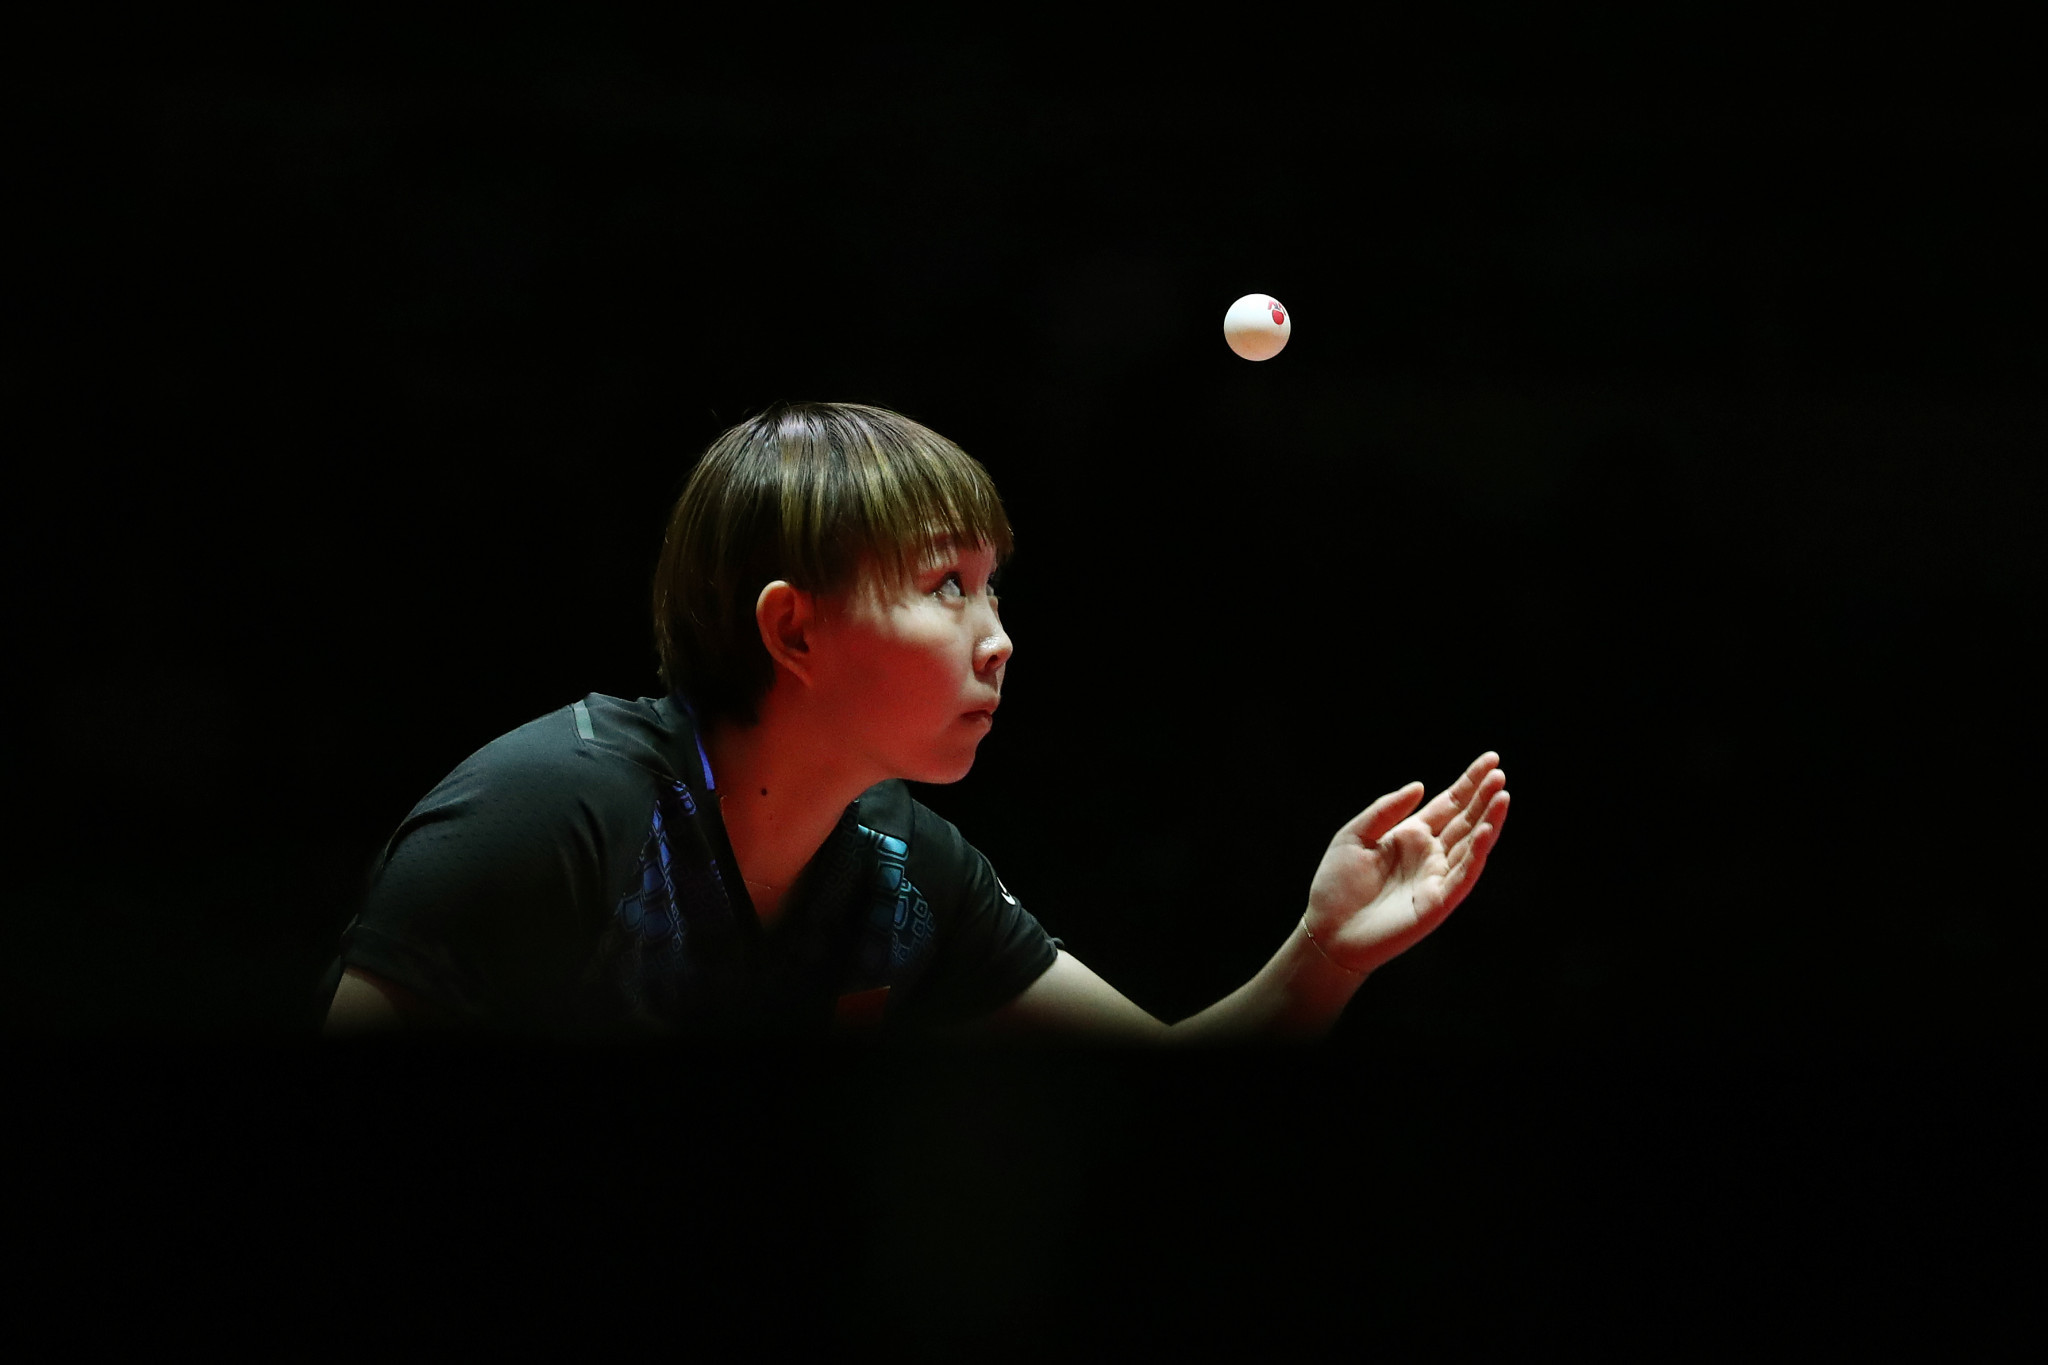 Zhang to meet top seed Zhu in last 16 at ITTF Women's World Cup